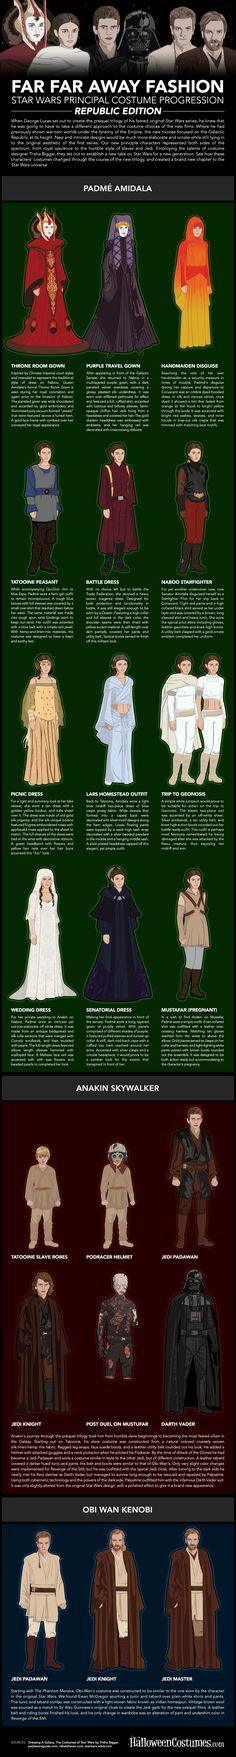 Star Wars Republic Costume Evolution Infographic | I love how Padme's got tons of outfits, Anakin has around six, and Obi-wan's basically stays the same the whole time!